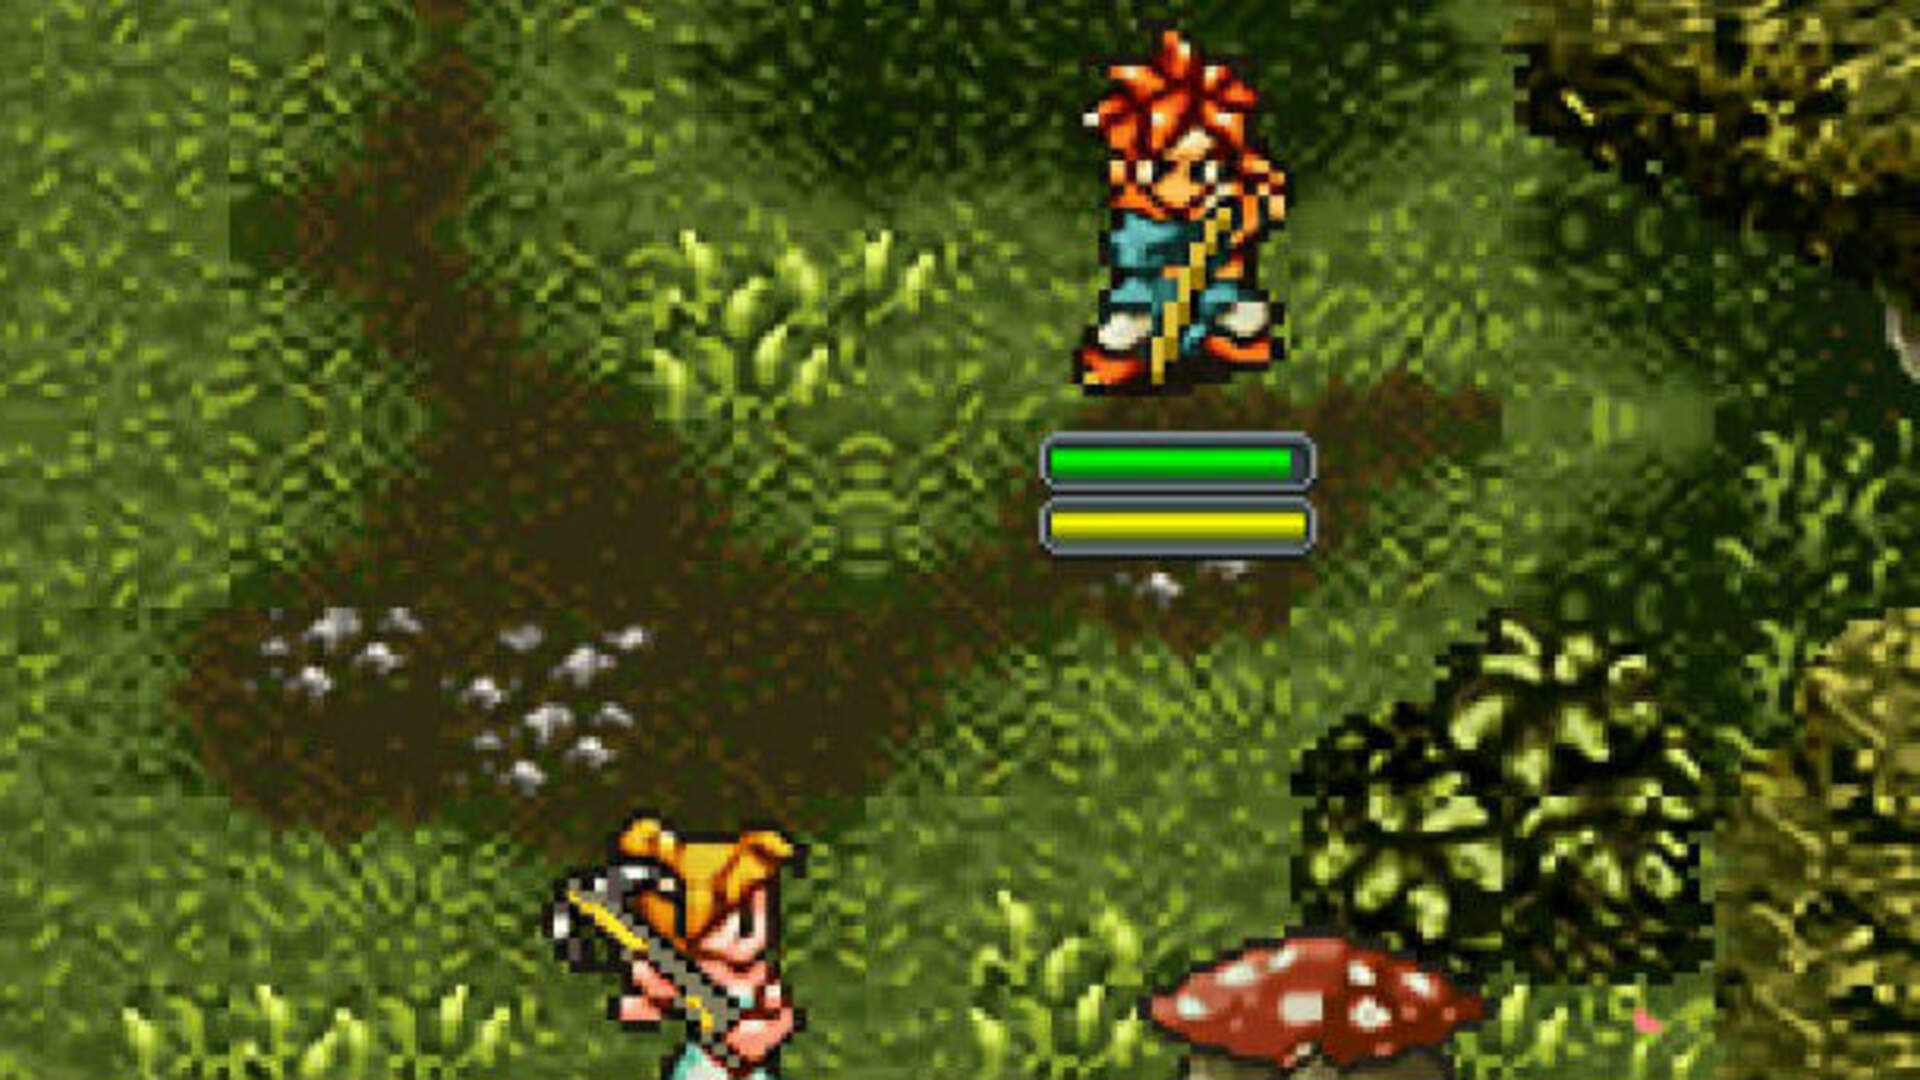 Square Enix Continues to Save Chrono Trigger on Steam With Another New Patch